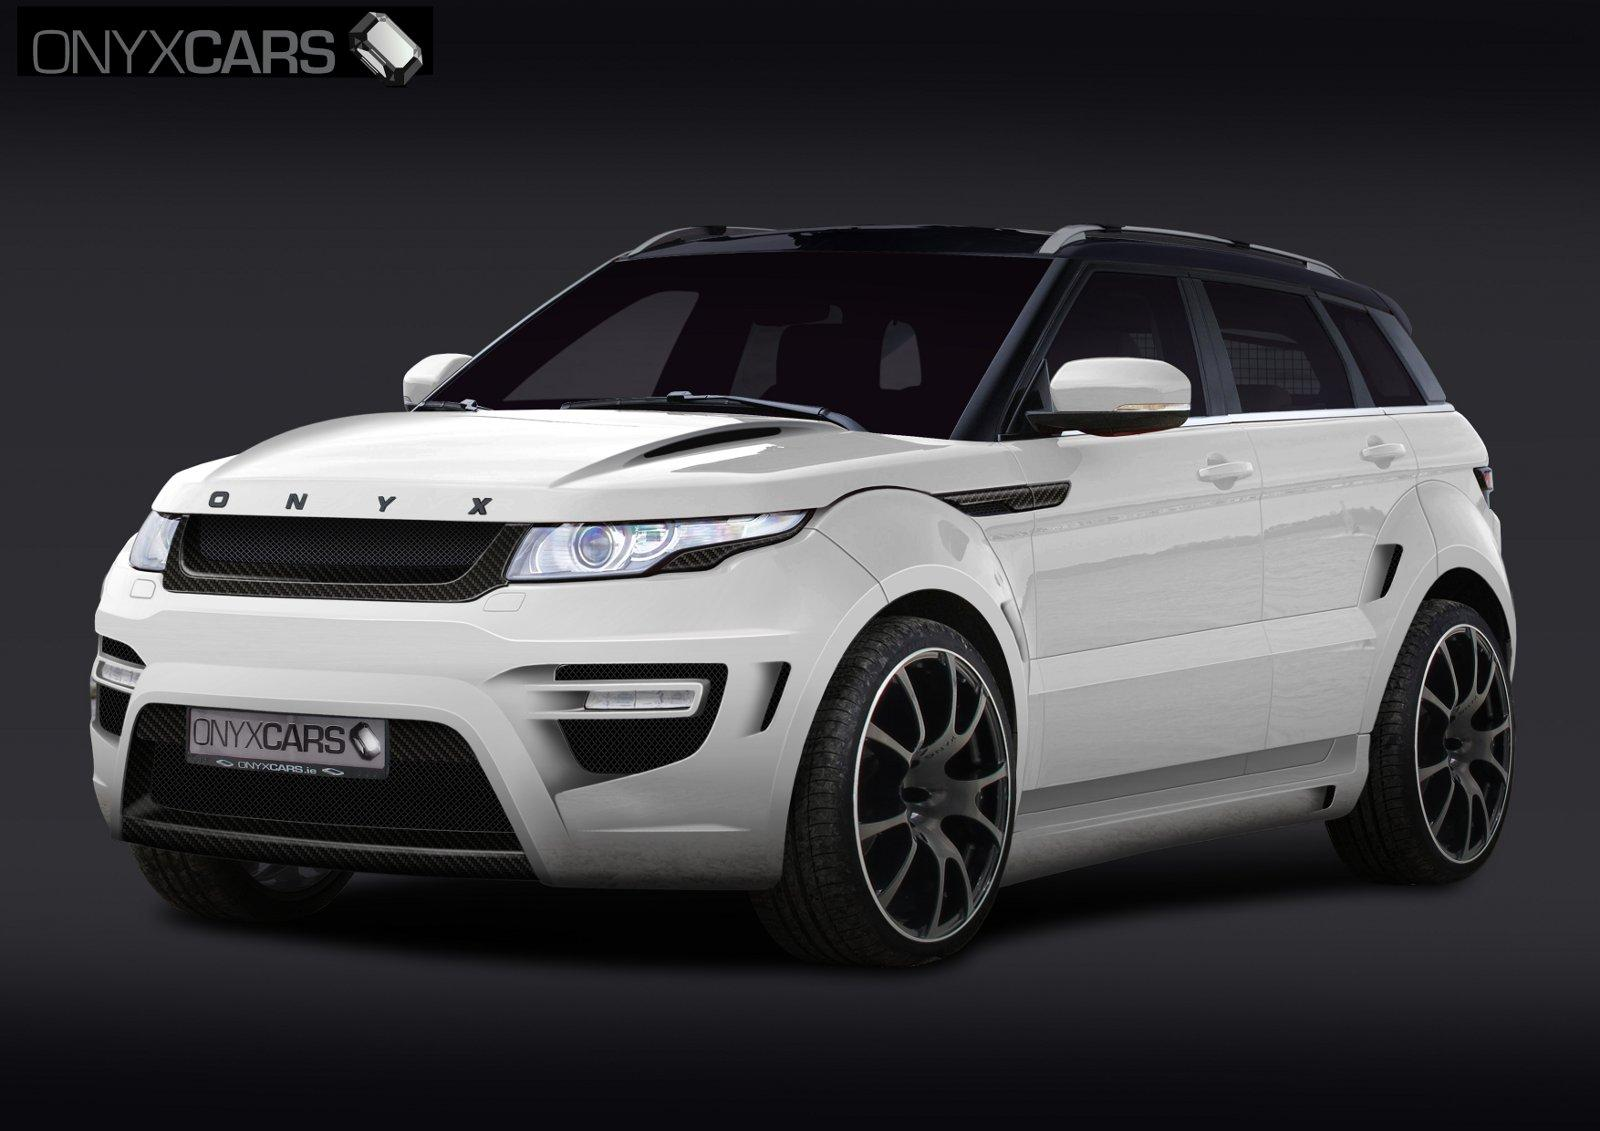 2012 Onyx Concept Evoque Rouge Edition 1 2012 Onyx Concept Evoque Rouge Edition   A Review